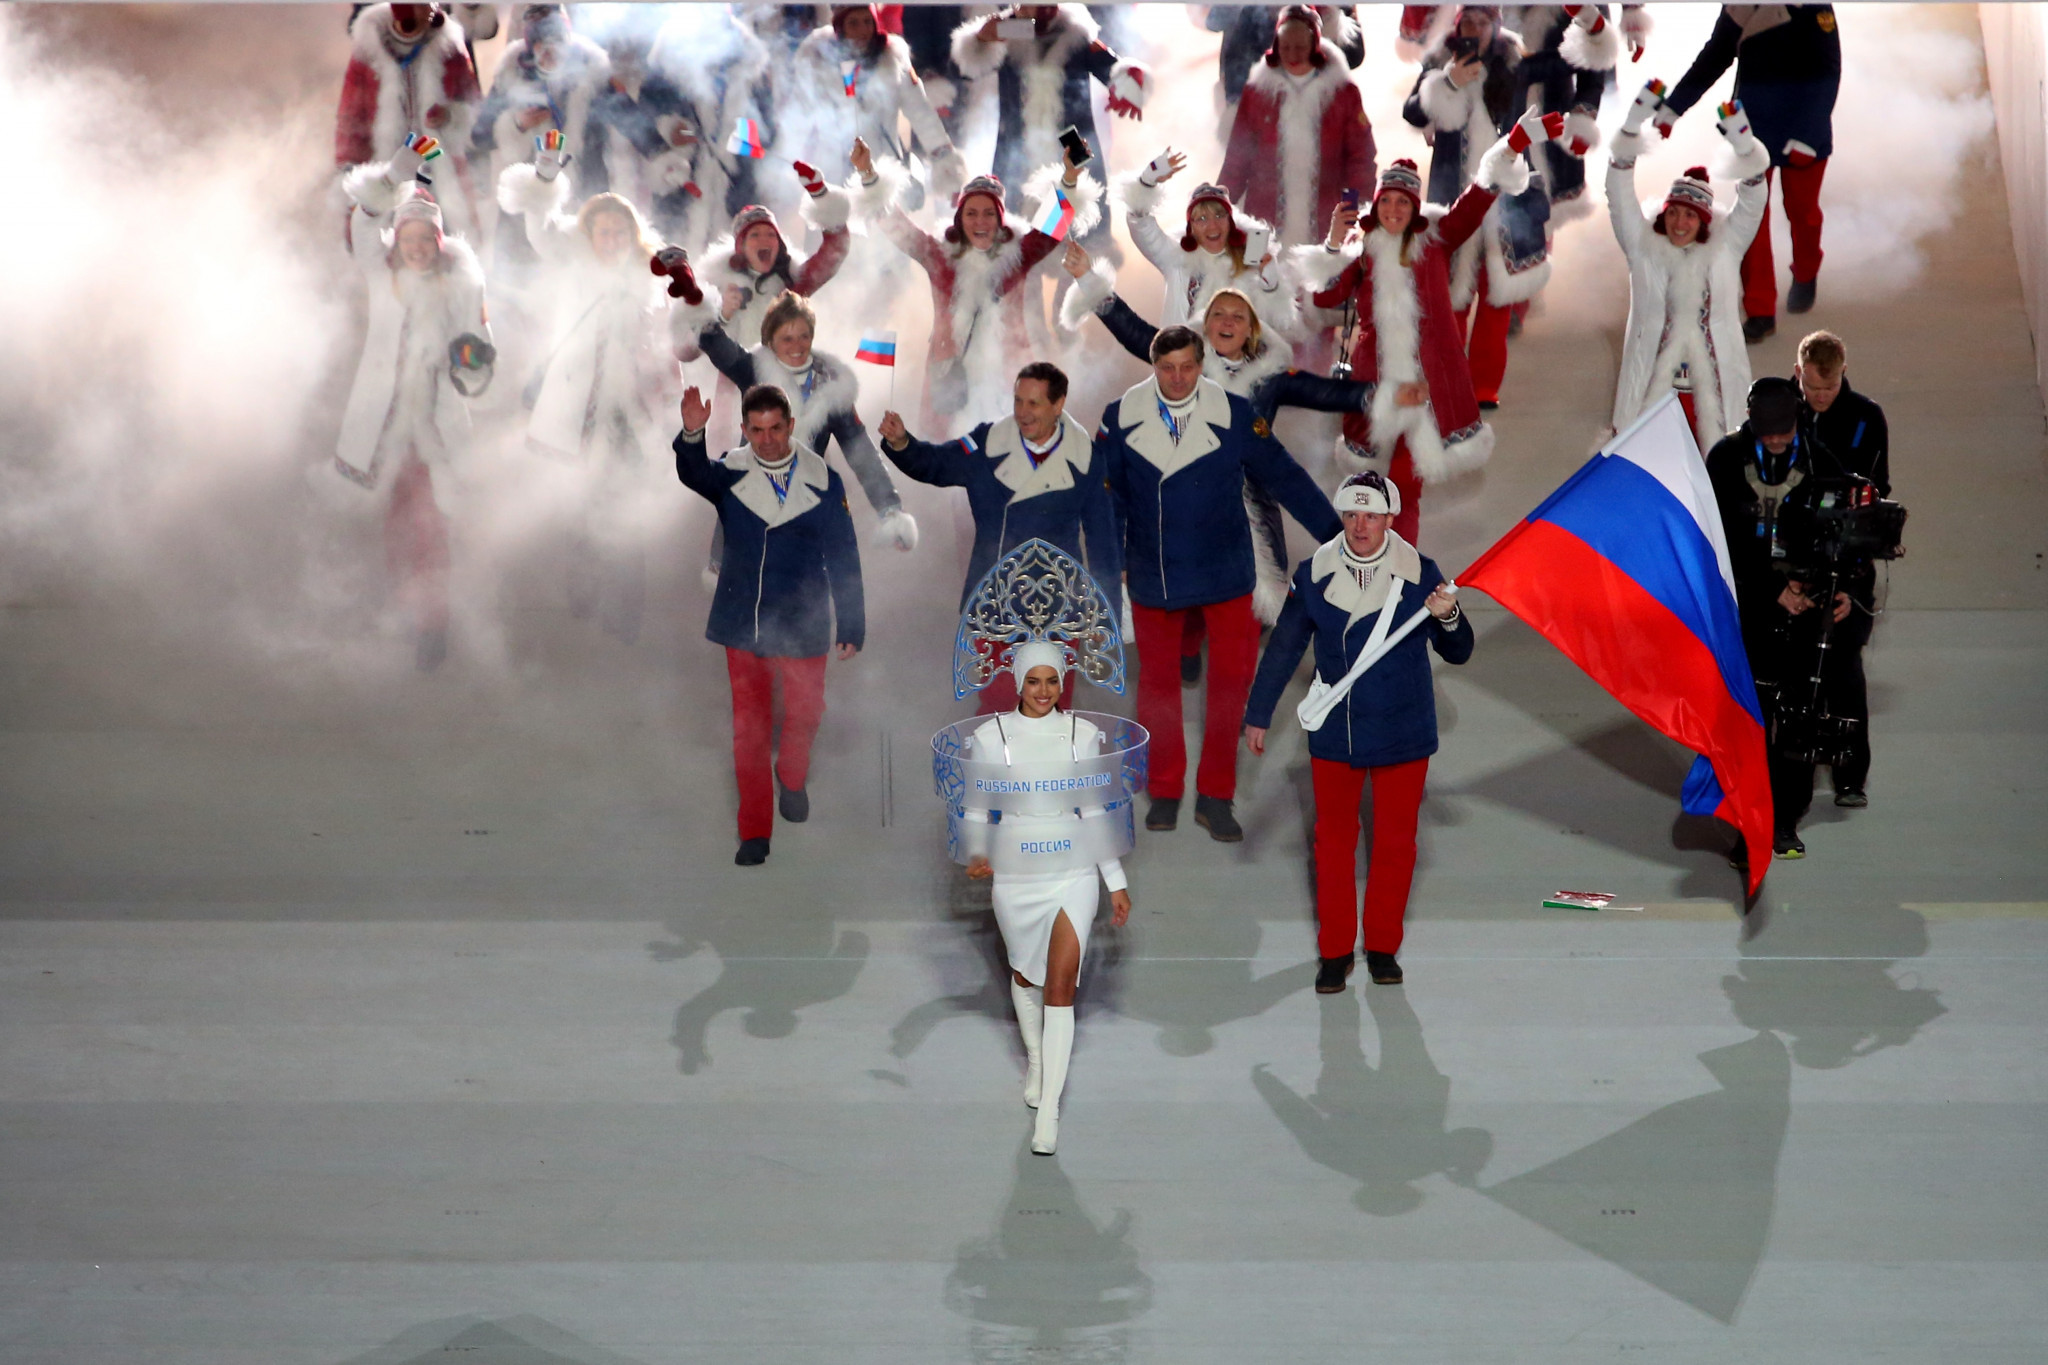 Russia athletes pictured at the Opening Ceremony of Sochi 2014 ©Getty Images